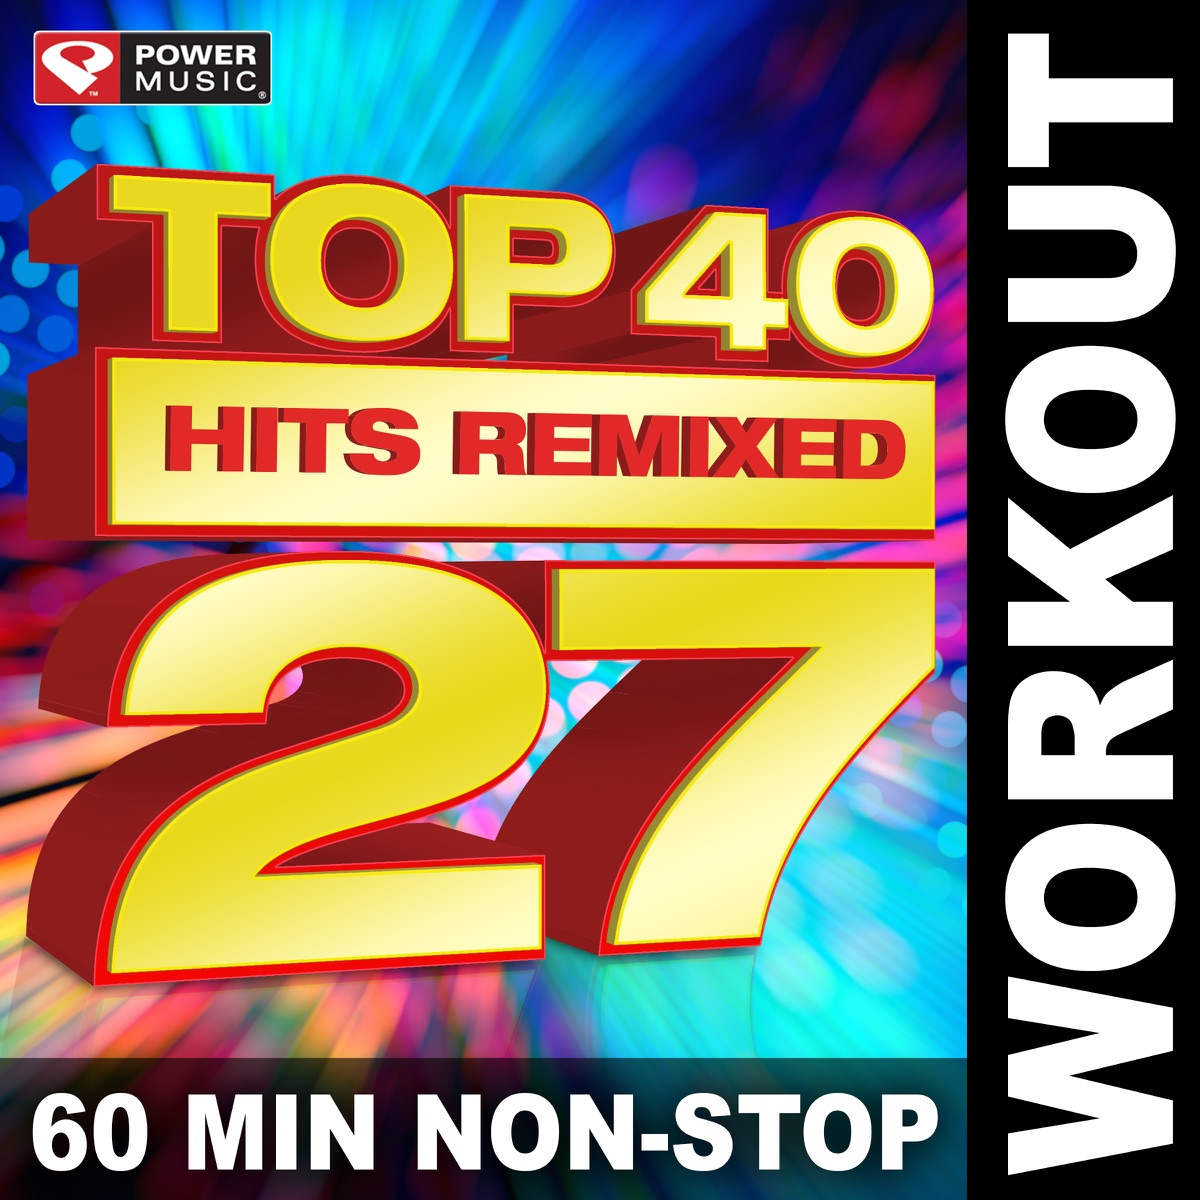 Top 40 Hits Remixed, Vol  27 Album Cover by Power Music Workout